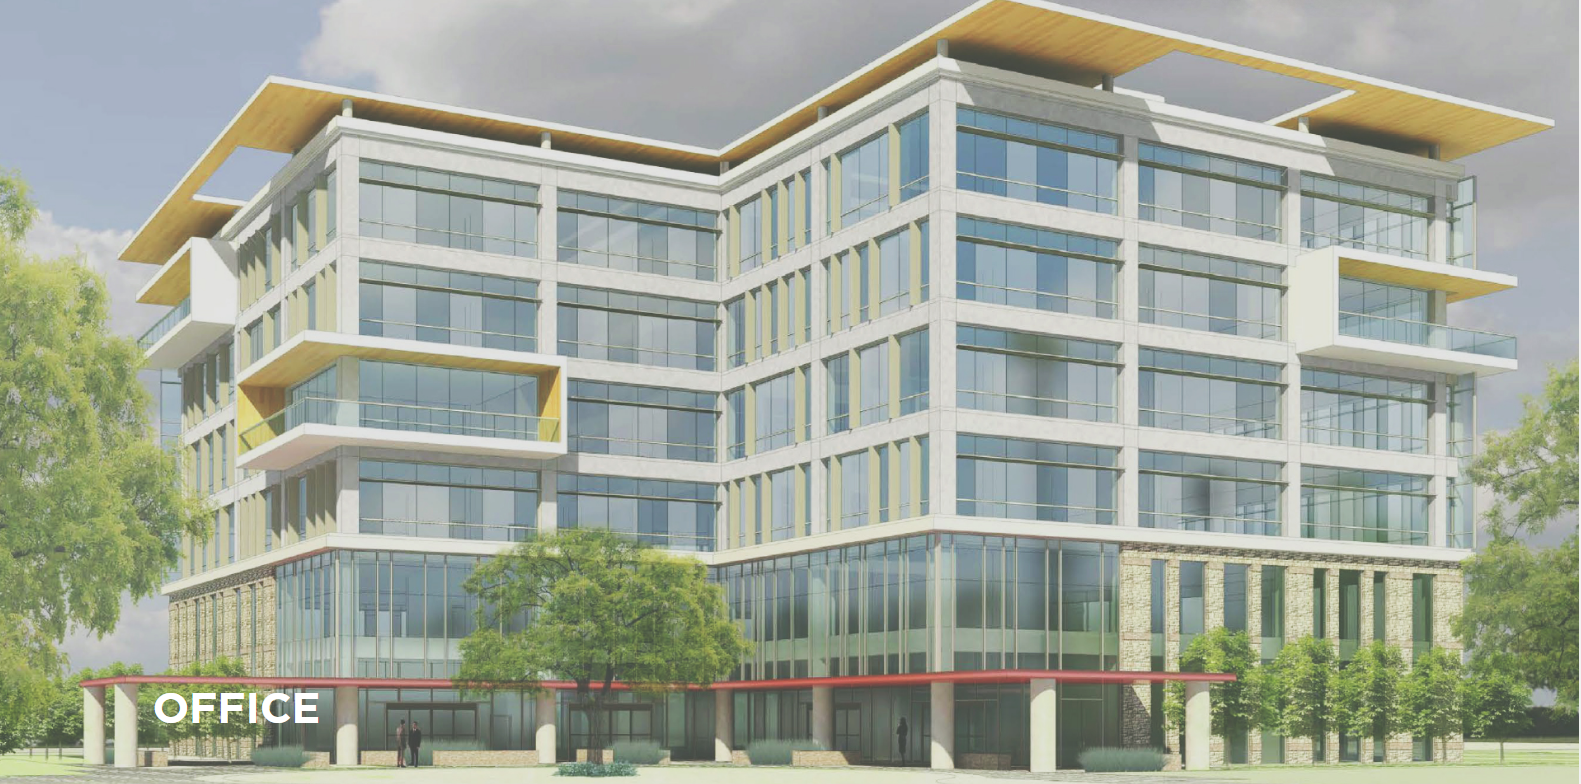 old town newhall office renderings